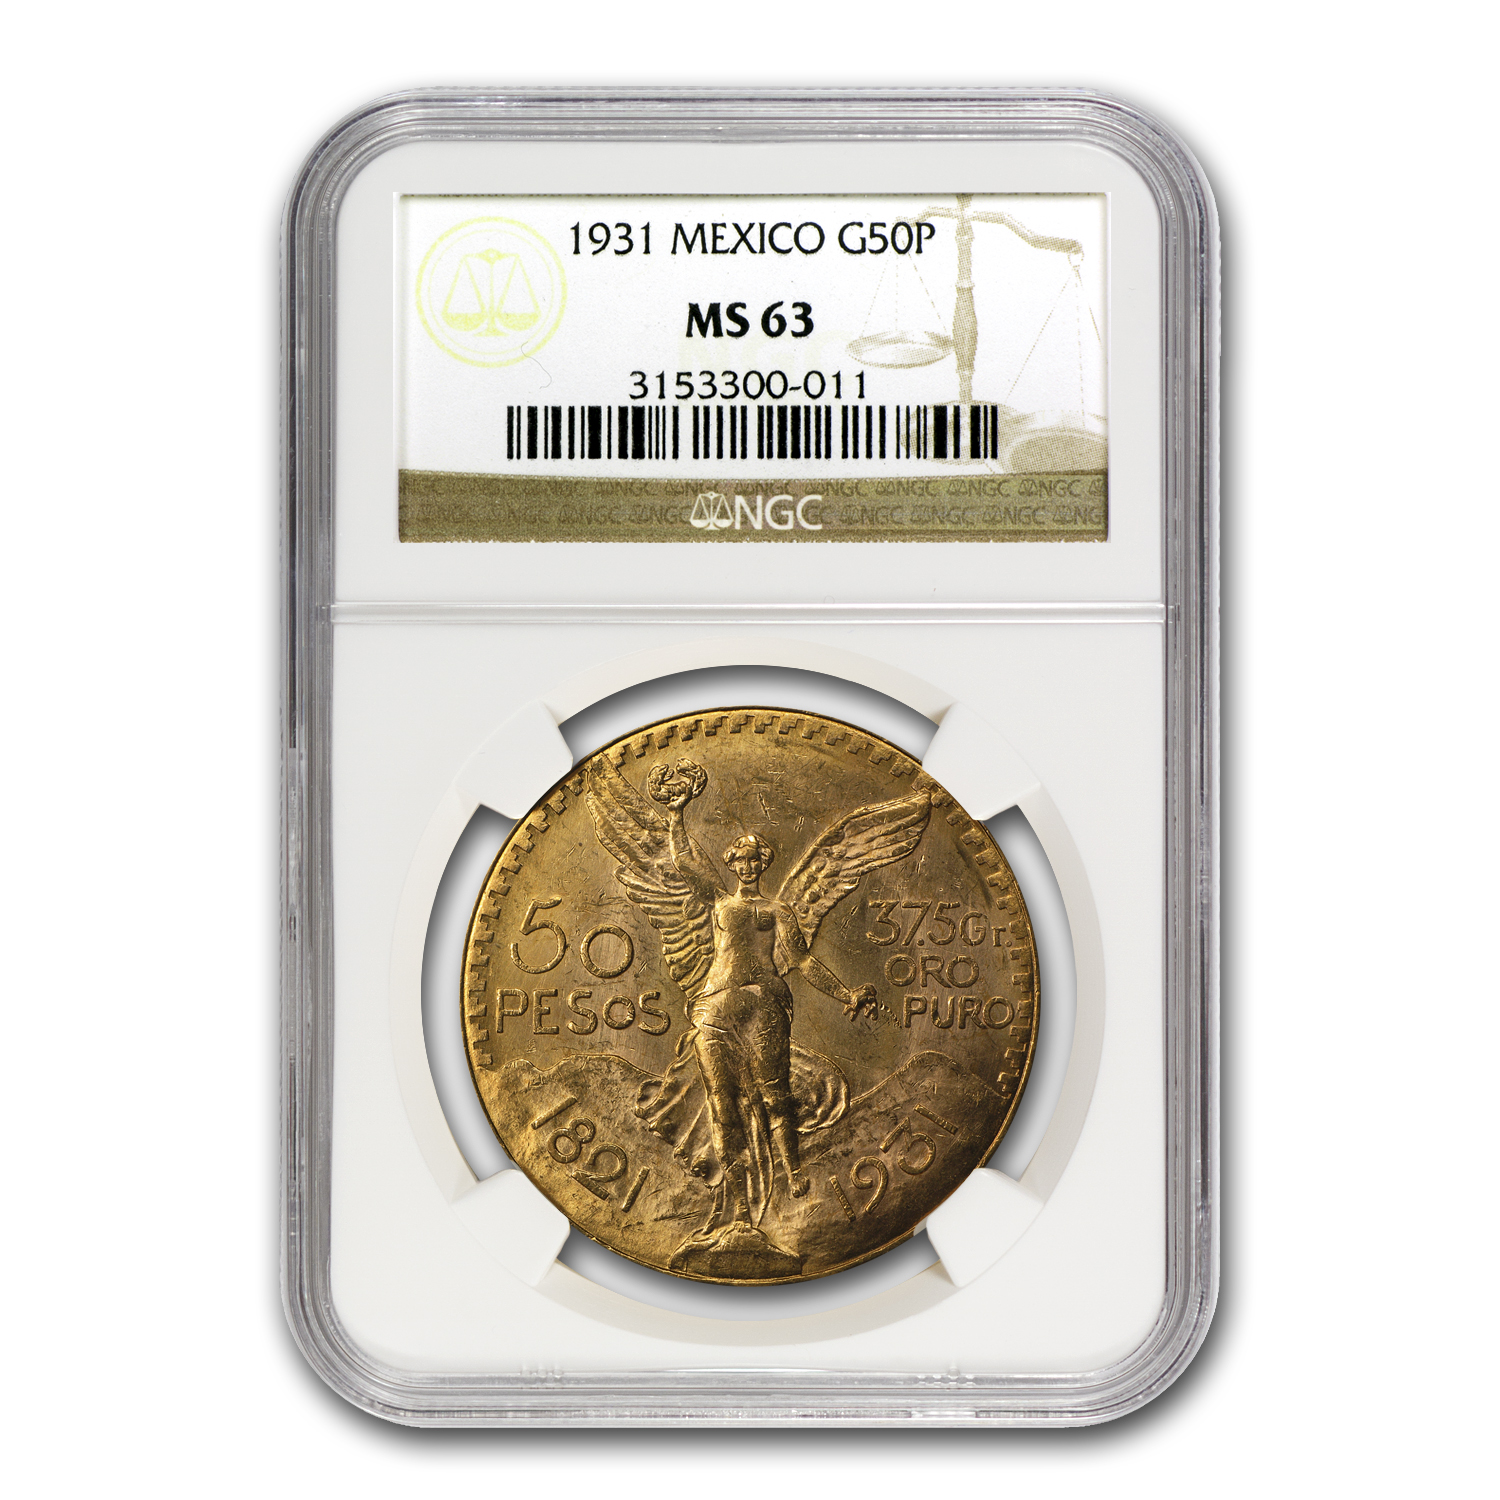 Mexico 1931 50 Pesos Gold Coin - MS-63 NGC